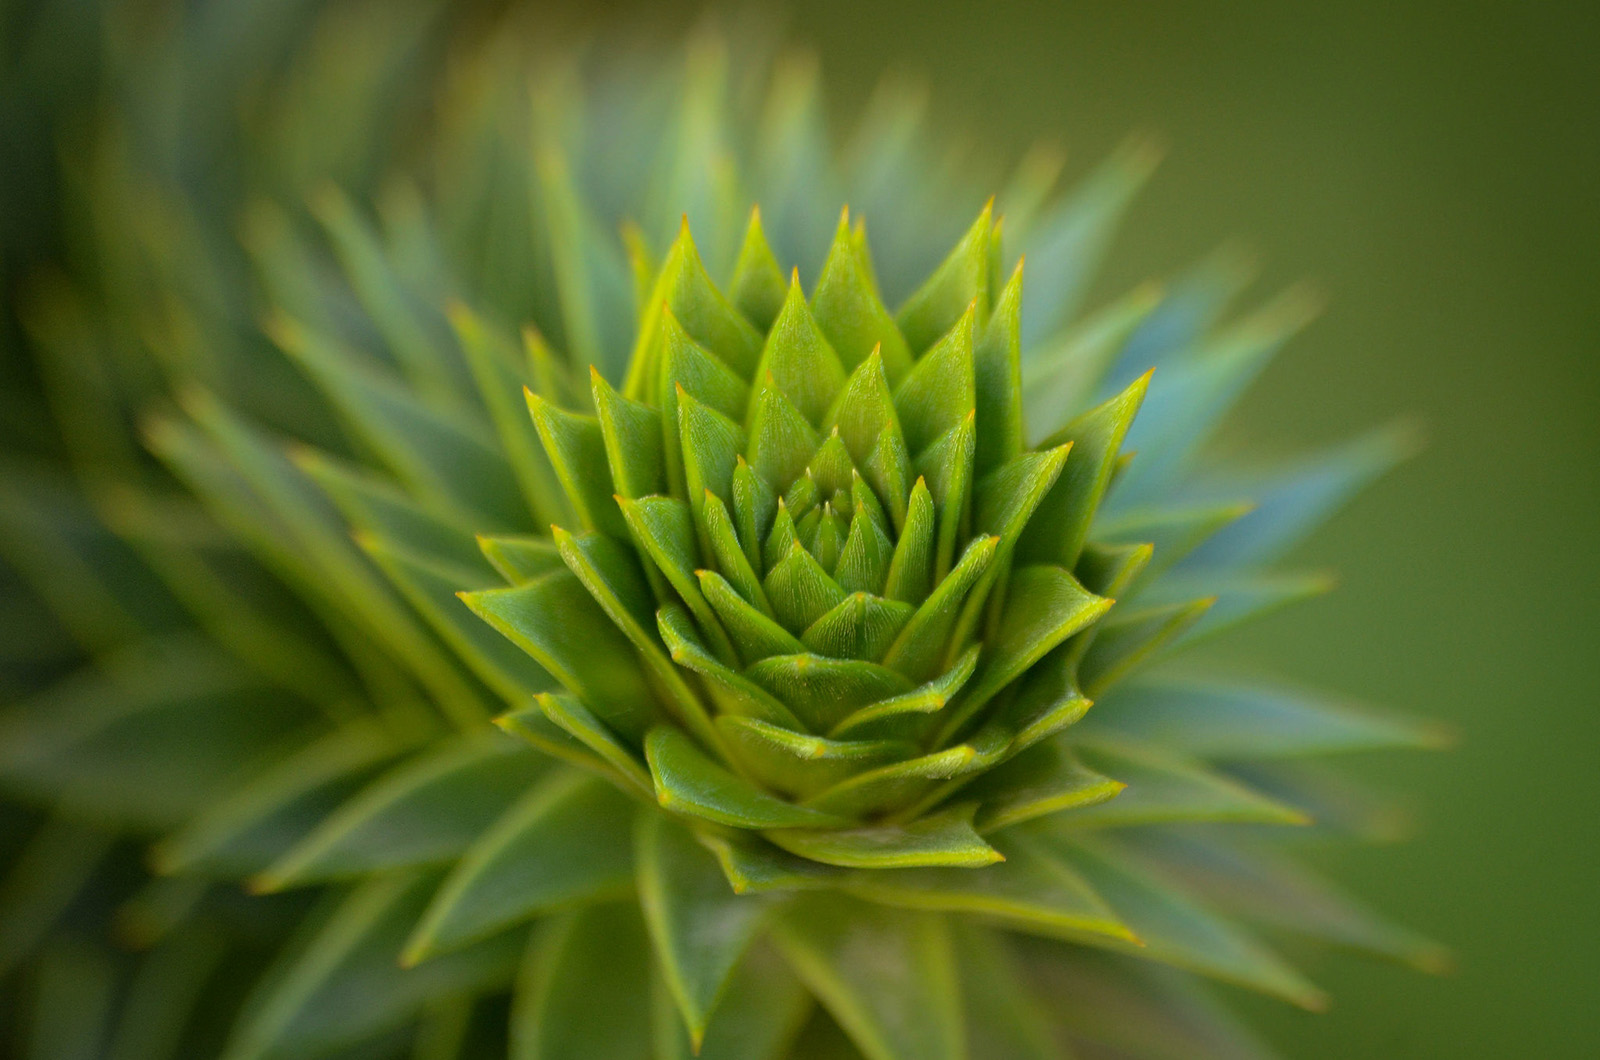 Close-up of the foliage of <i>Araucaria araucana</i>